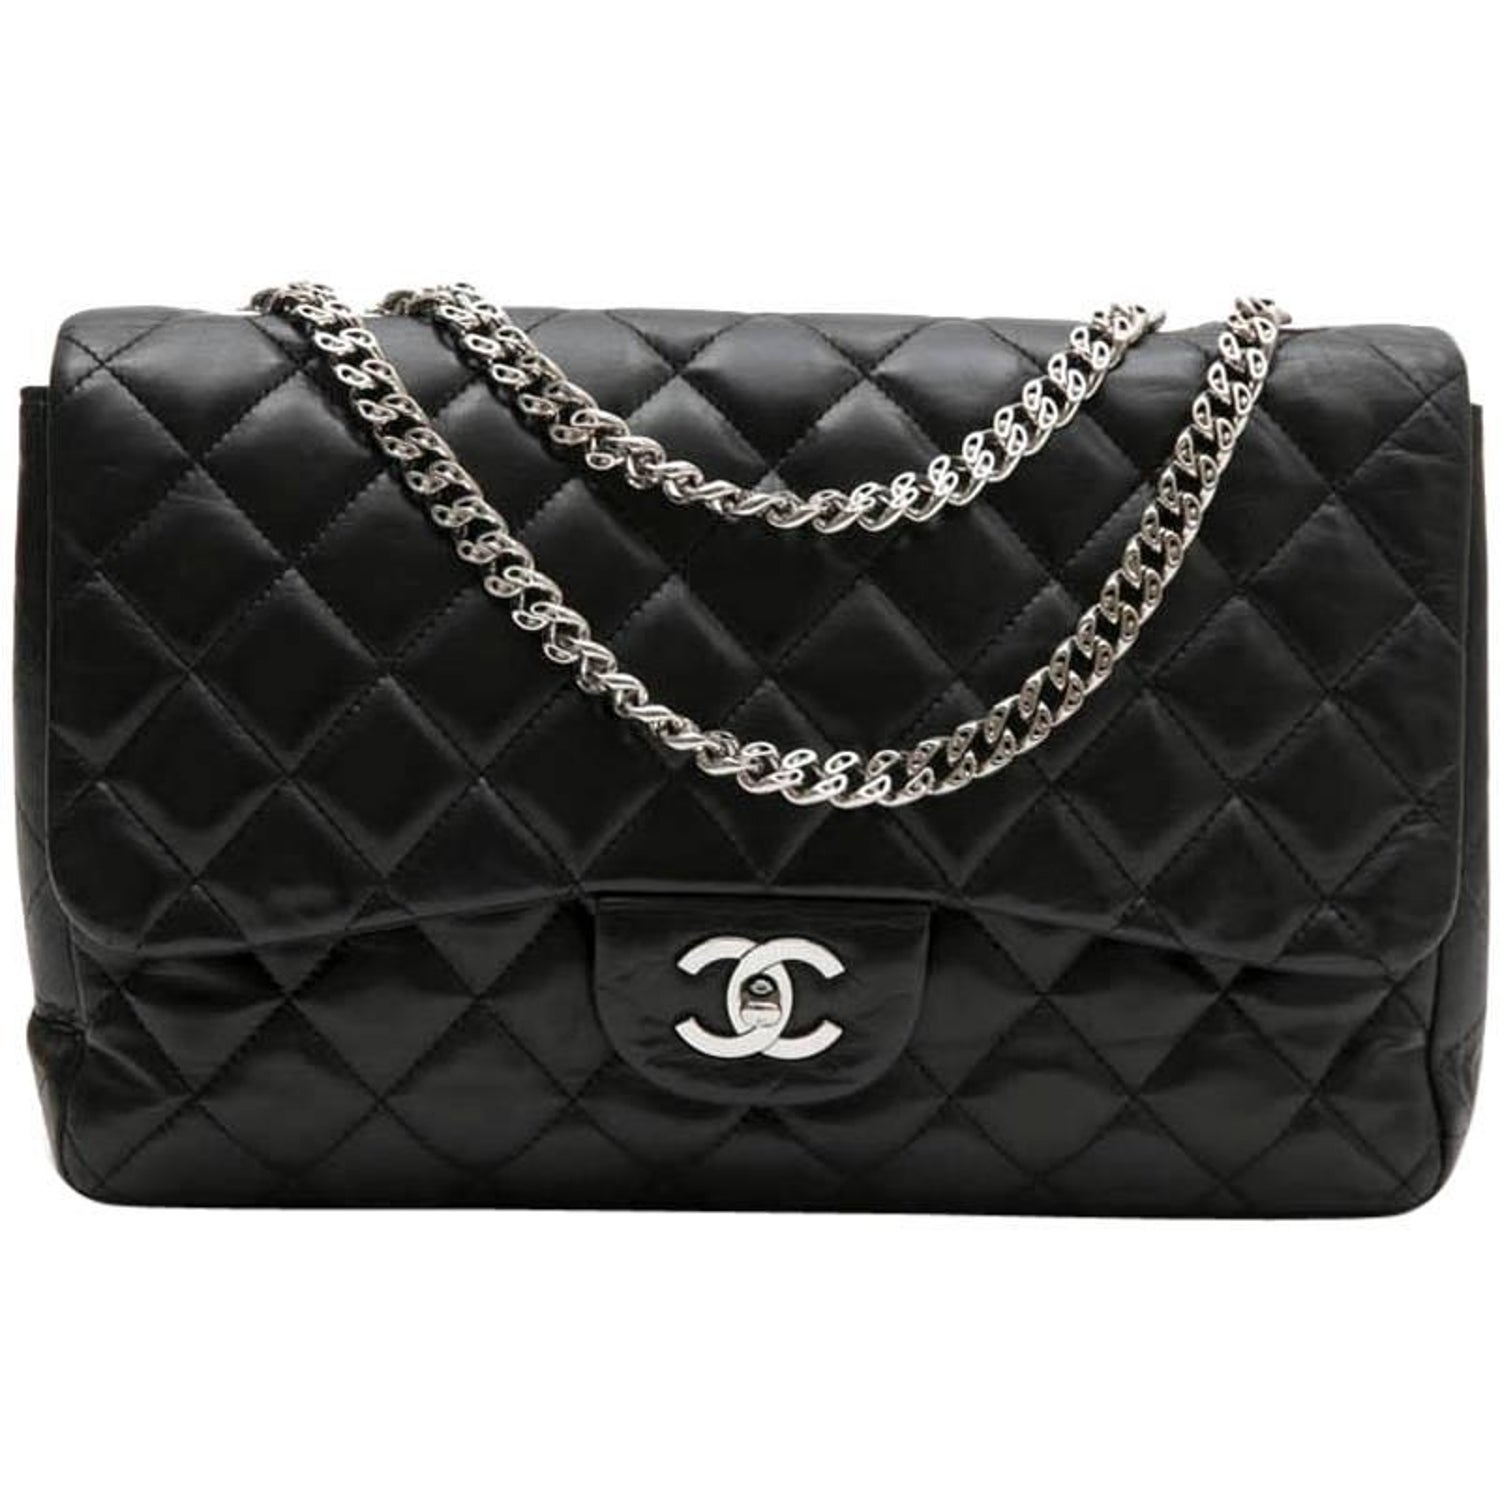 852b69ce3034 CHANEL  Jumbo  Flap Bag in Black Smooth Quilted Lambskin Leather at 1stdibs